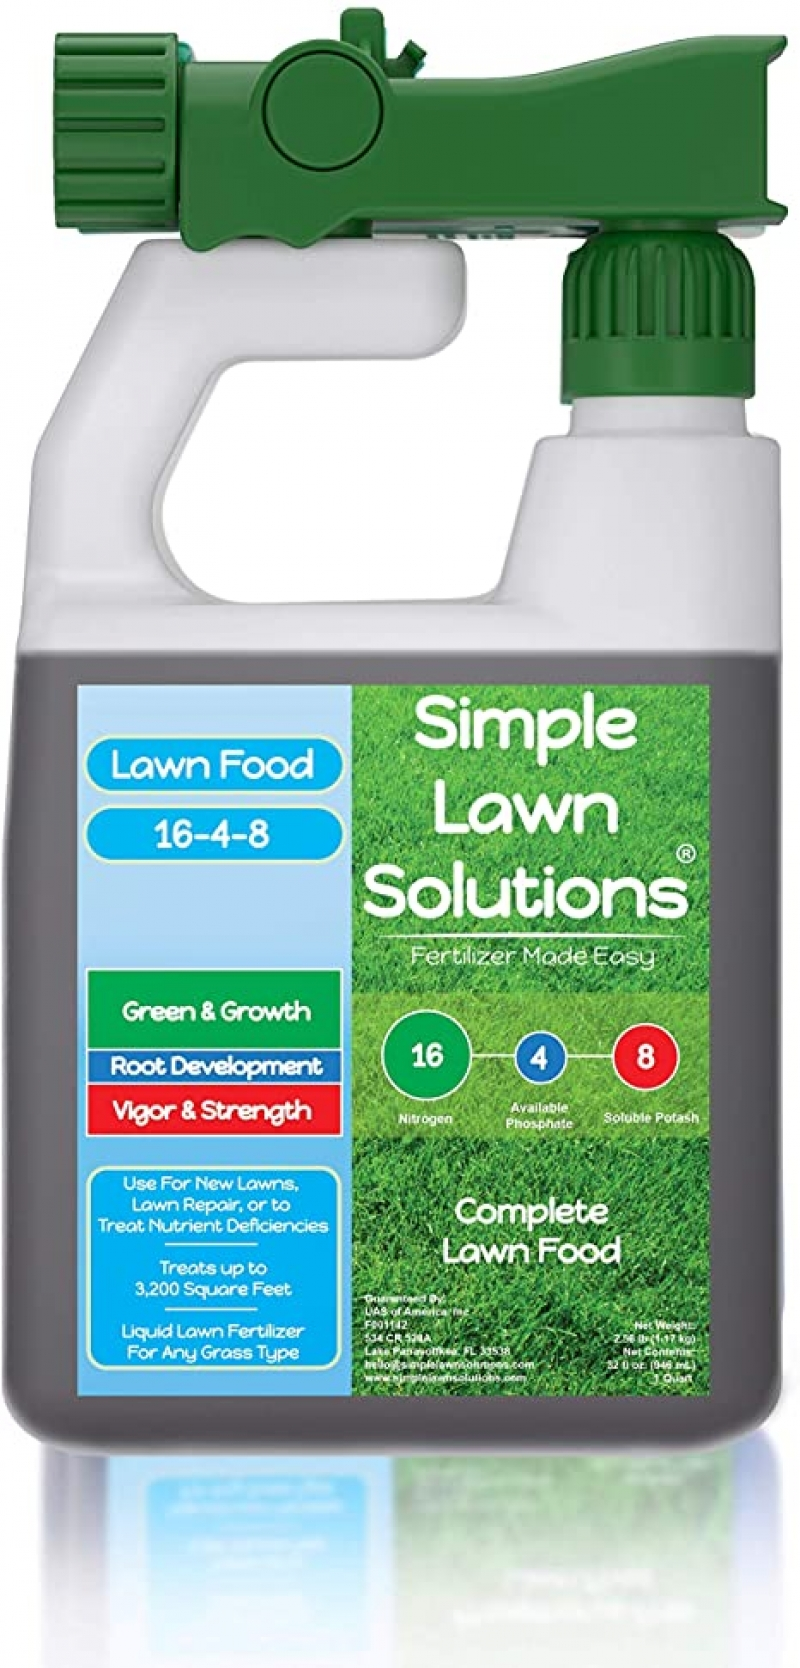 ihocon: Simple Lawn Solutions Advanced 16-4-8 Balanced NPK - Lawn Food (32 Ounce) 草地肥料